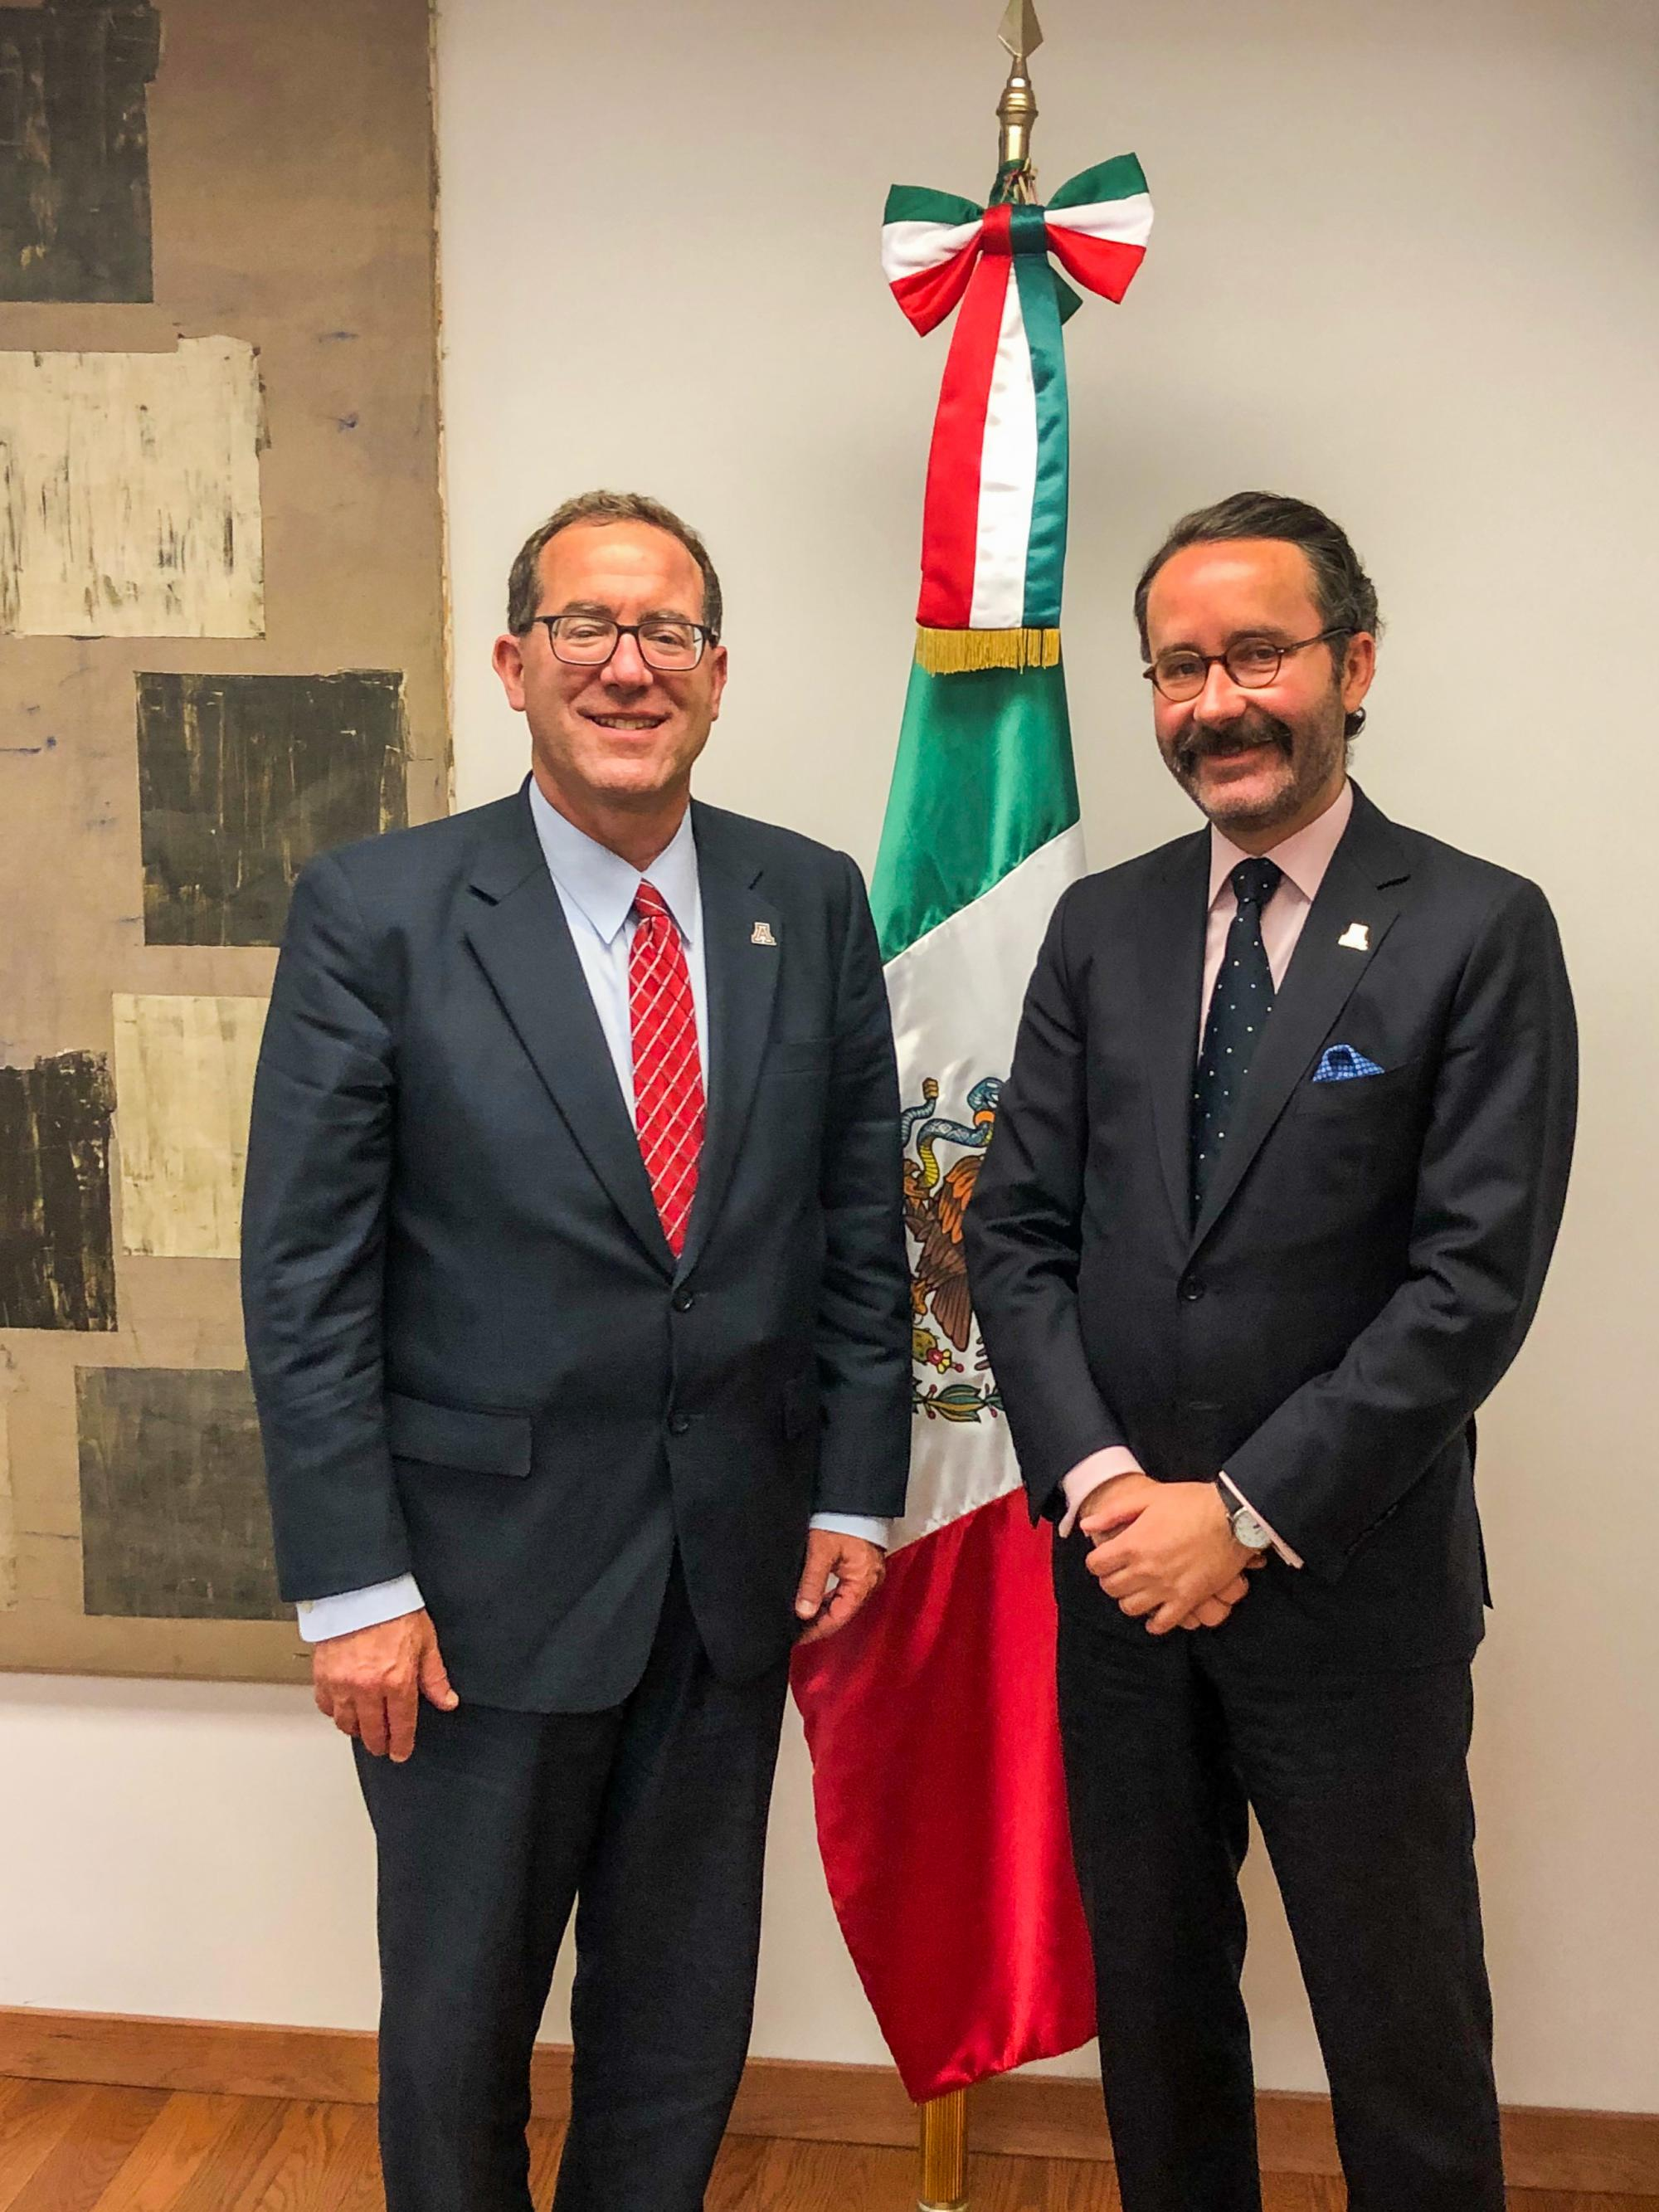 University of Arizona College of Law Dean Marc Miller  meets with Diego Gomez Pickering, Mexico's Consul General in New York, who participated in the program.